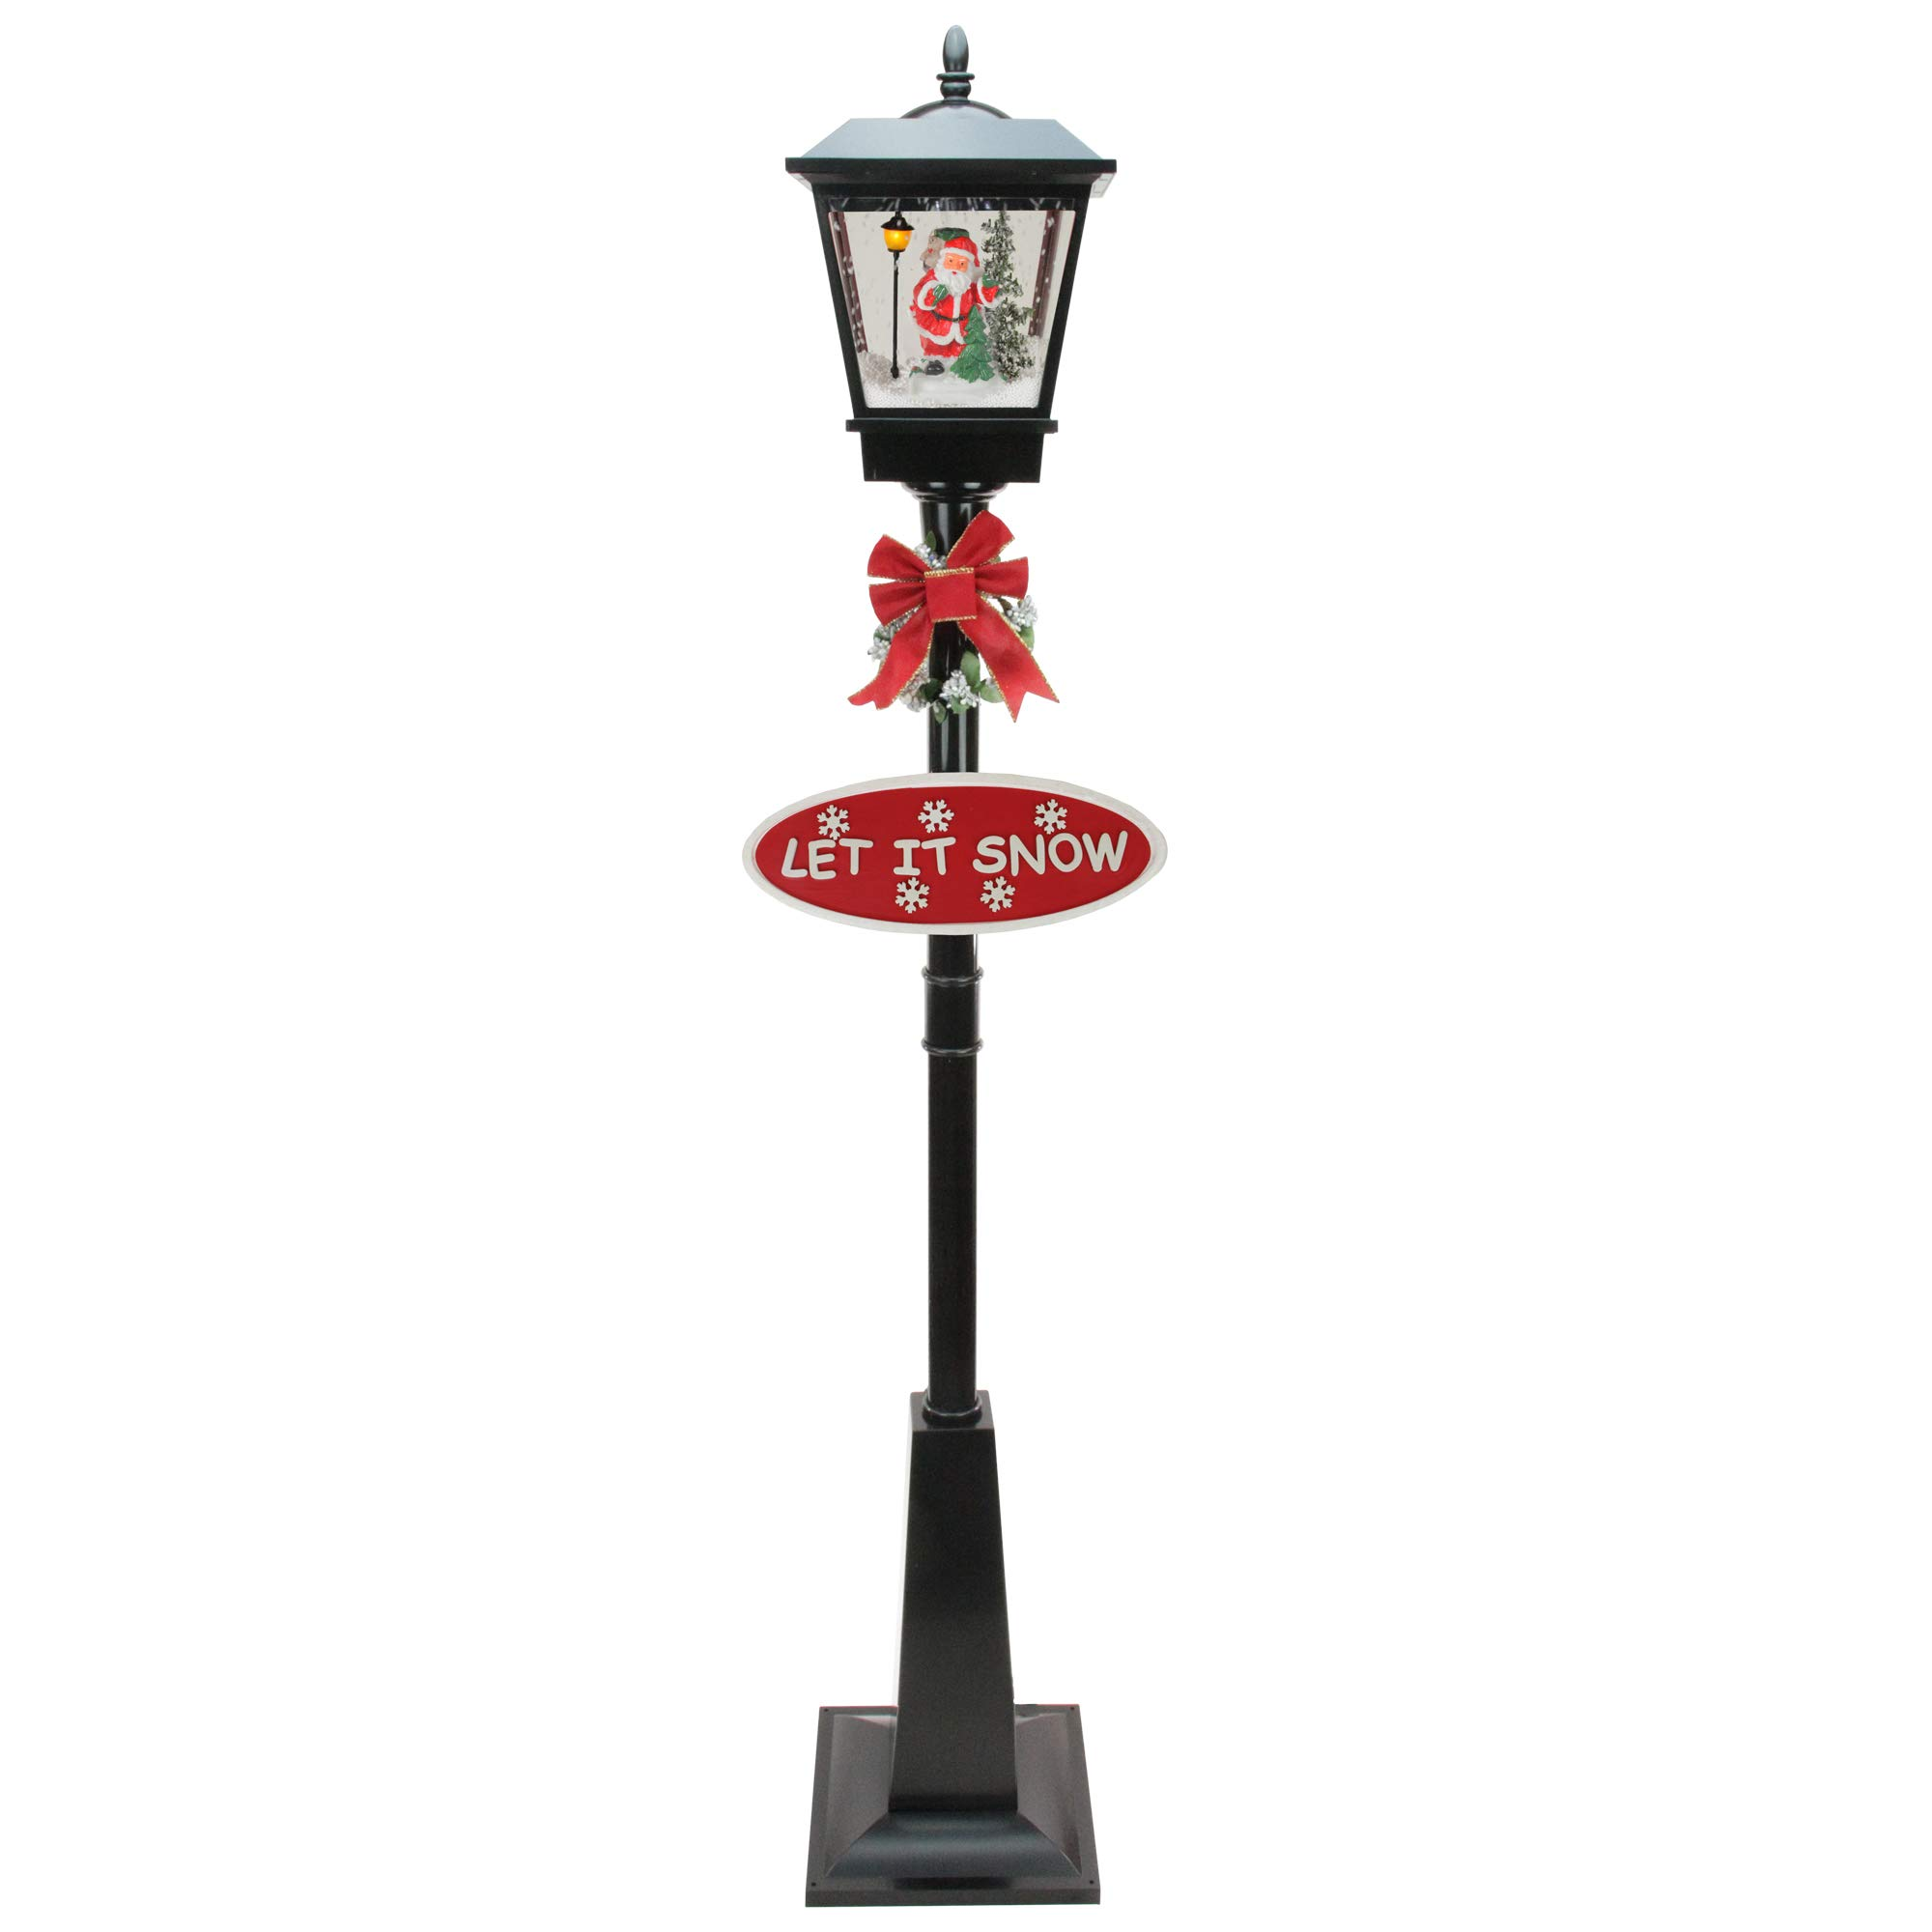 Northlight 70.75'' Lighted Black Musical Santa Vertical Snowing Christmas Street Lamp